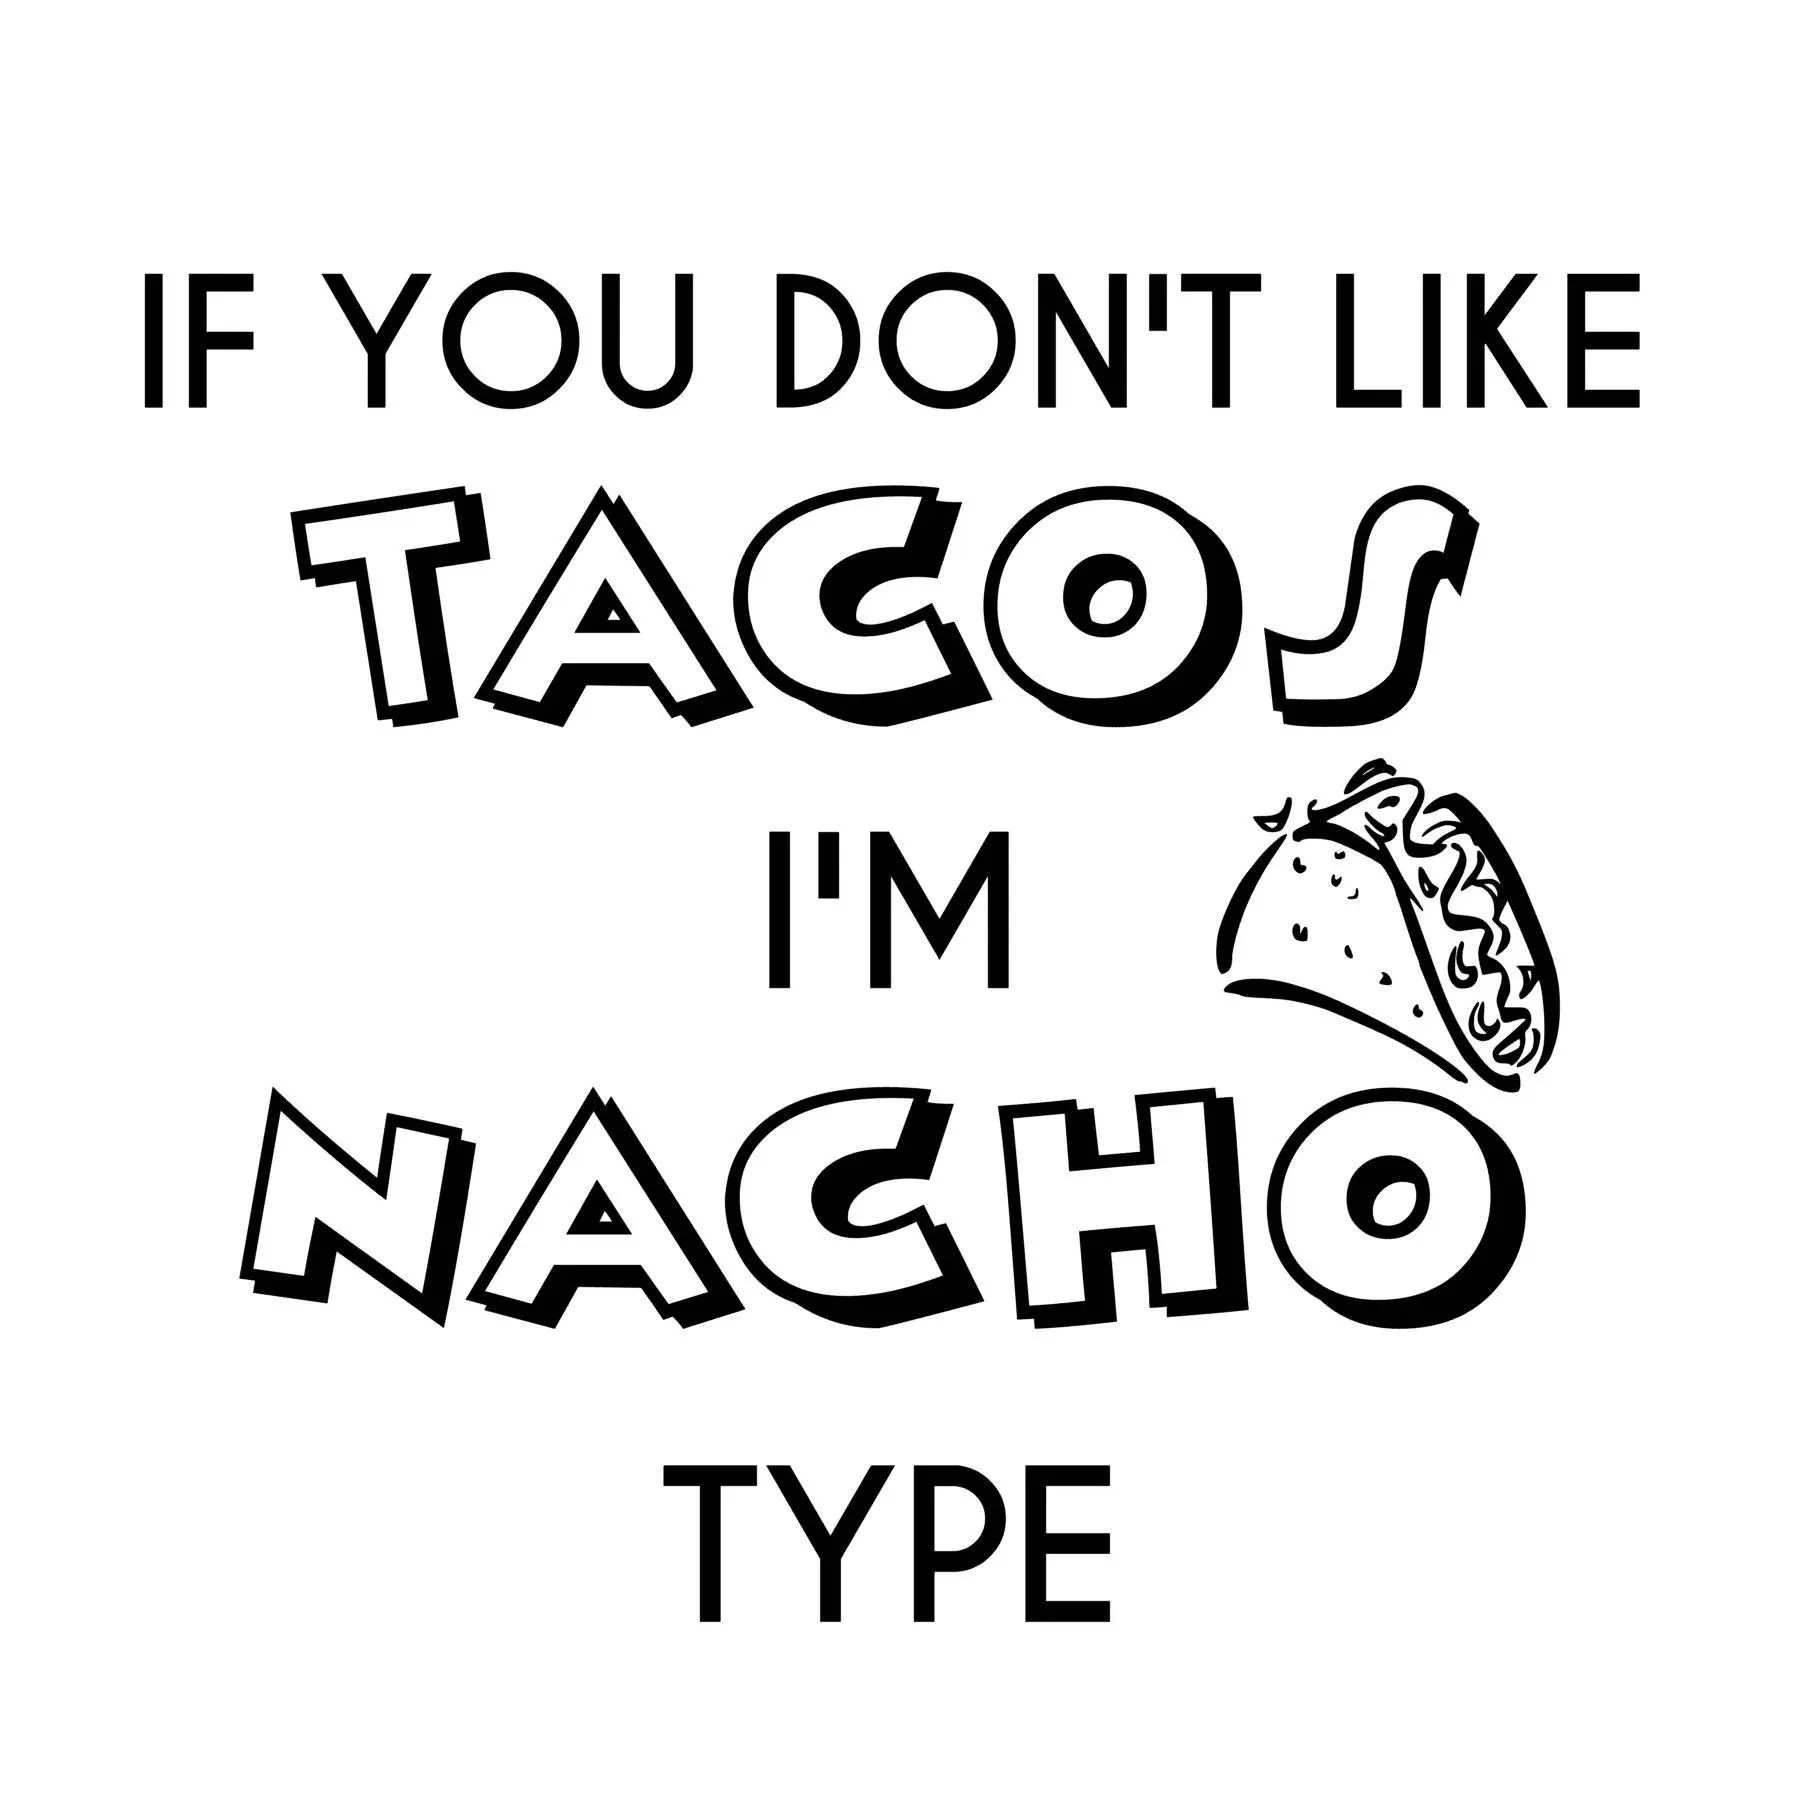 I Love Tacos Svg Cut File Cutting File Nacho Type Svg